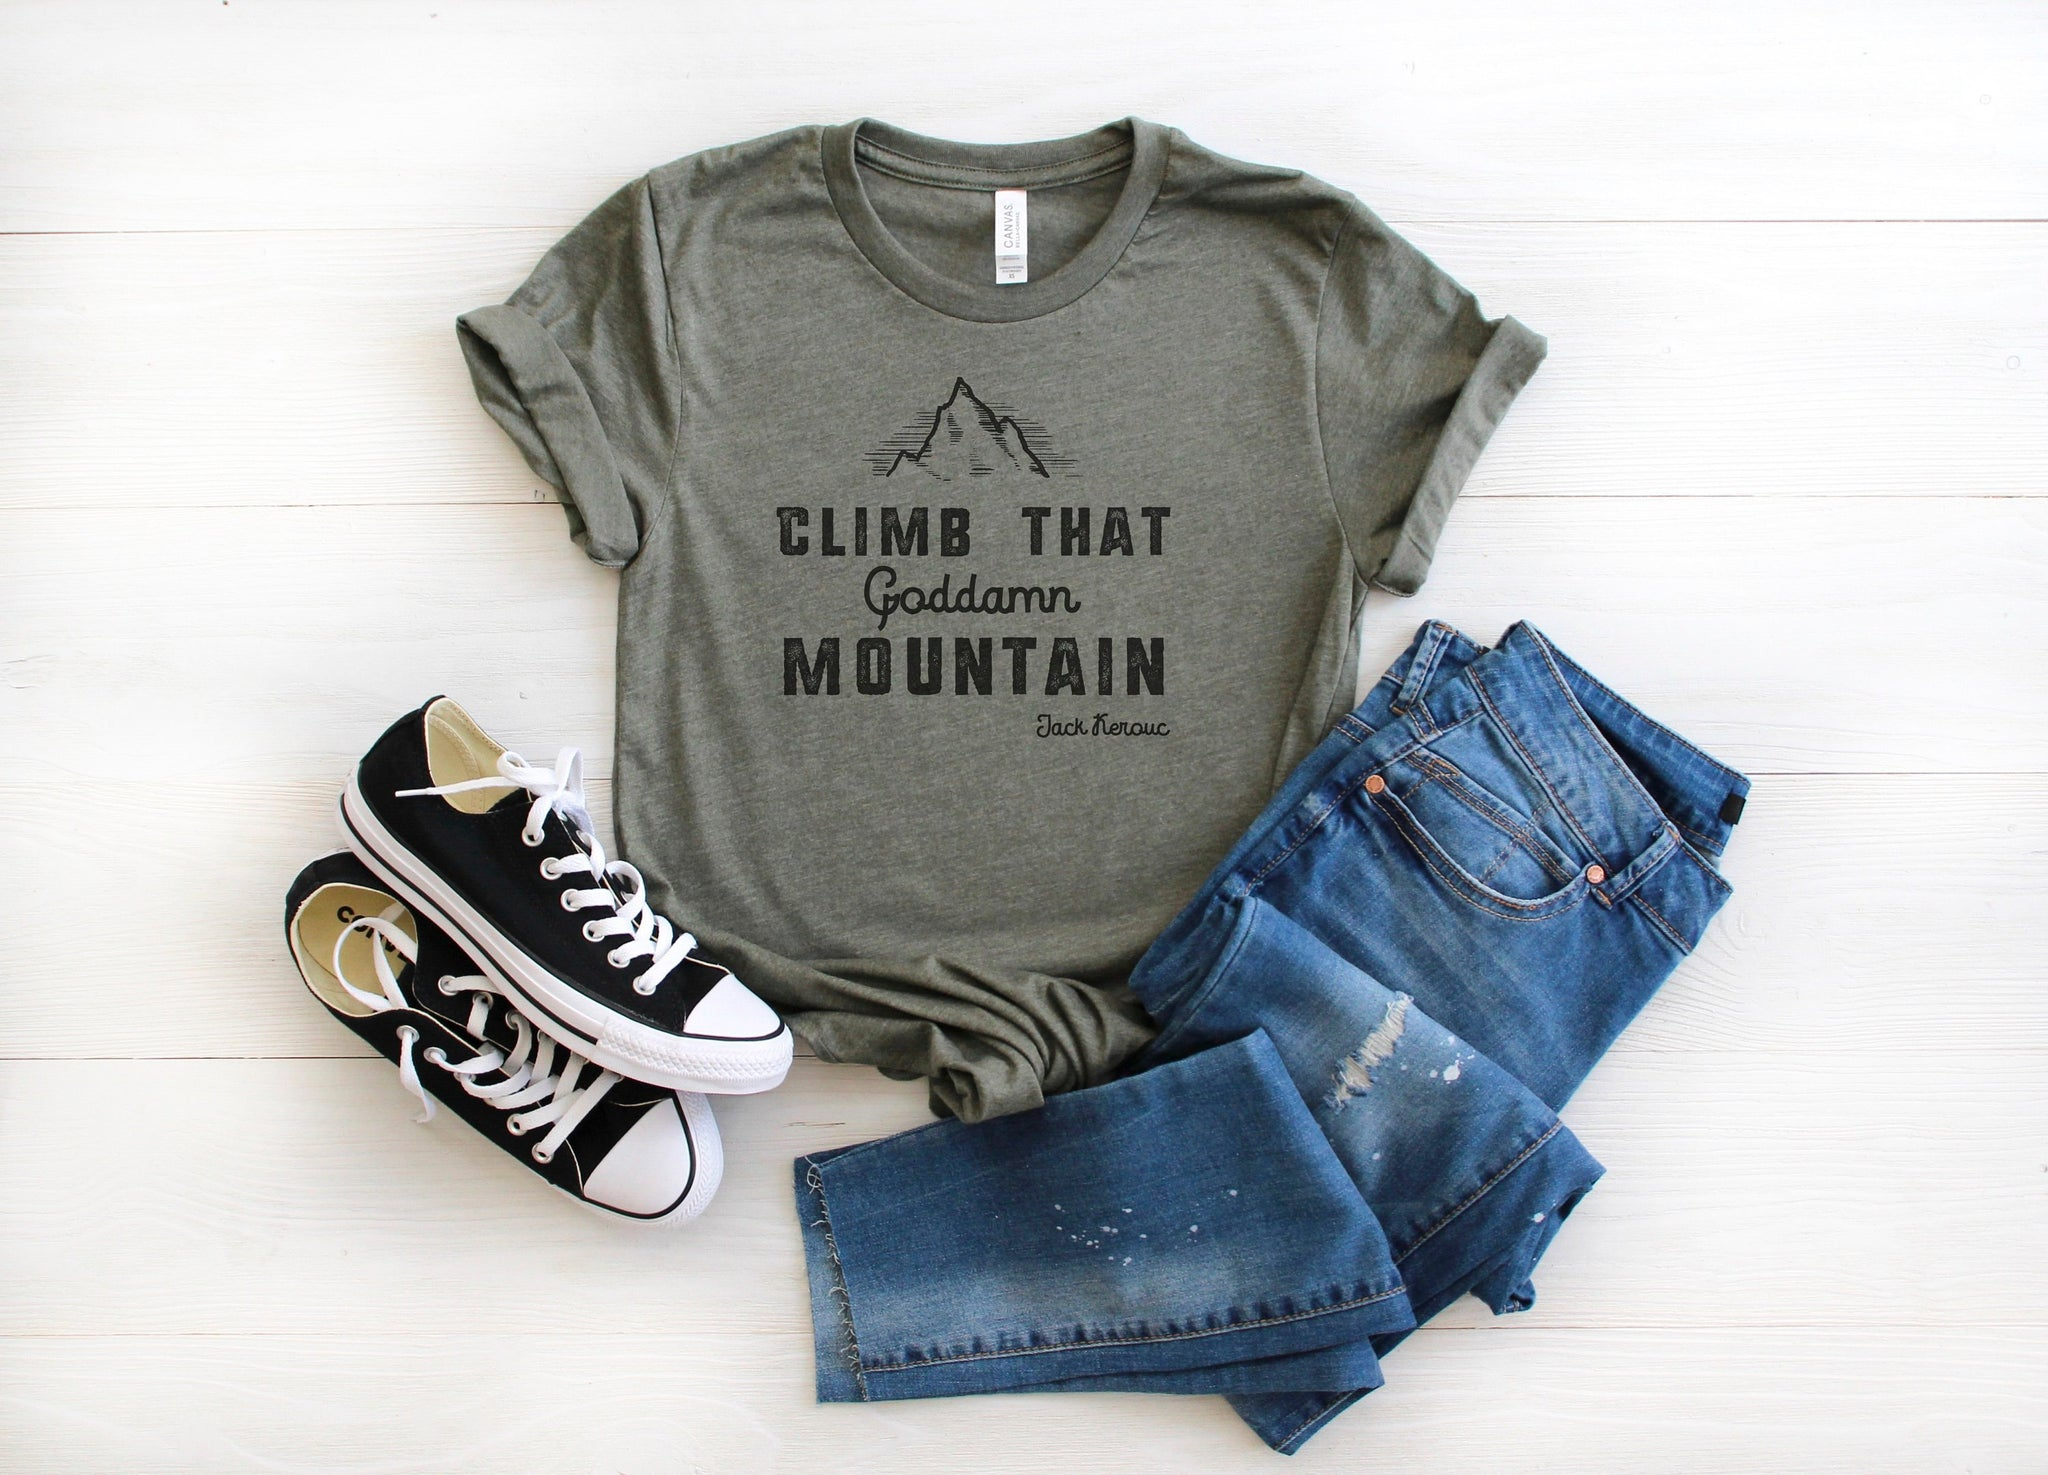 Climb That Goddamn Mountain -  Unisex T-Shirt - Women's Motivational Tshirt - Quote Shirt